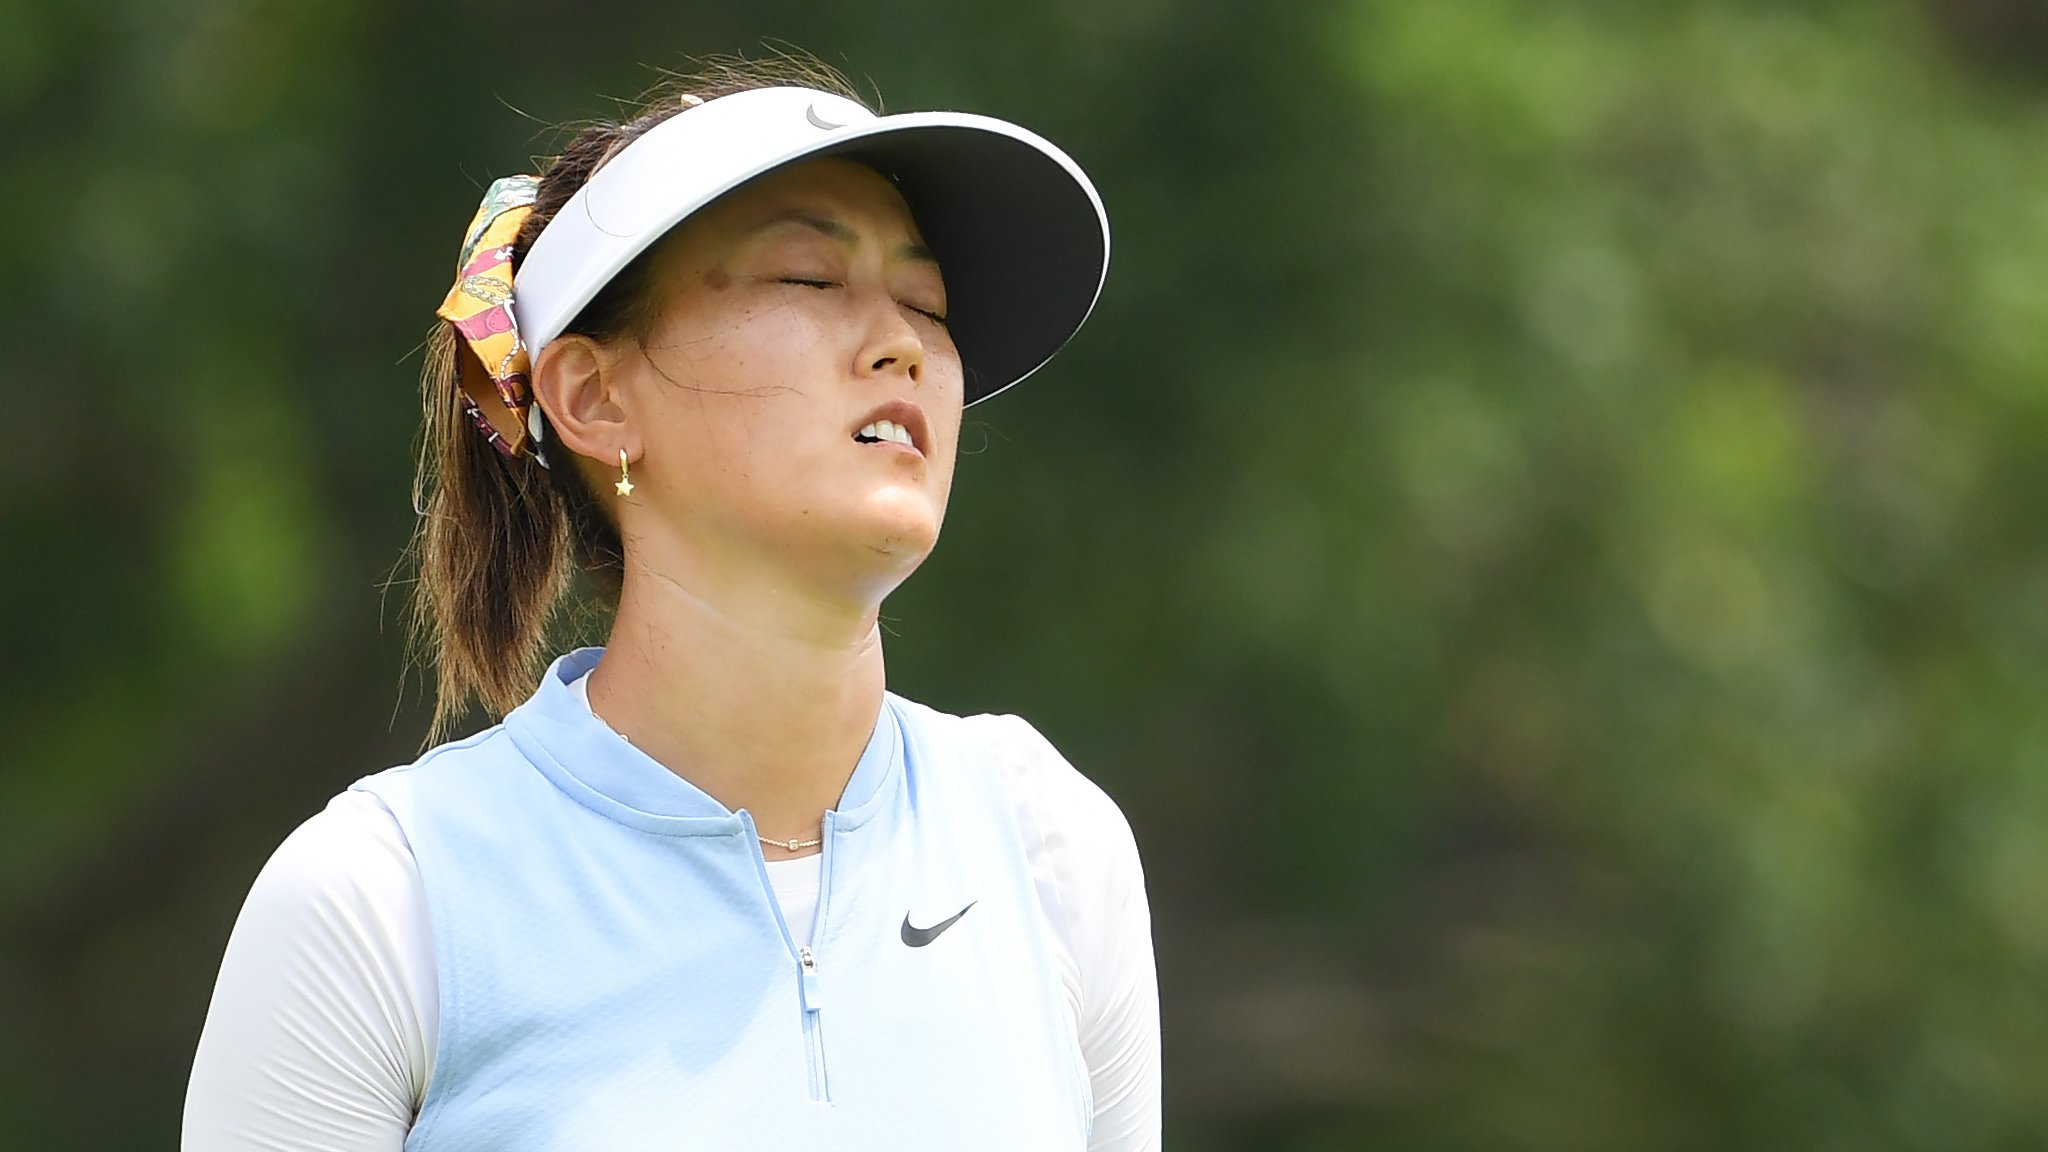 Michelle Wie: Wrist injury forces American to take break from golf